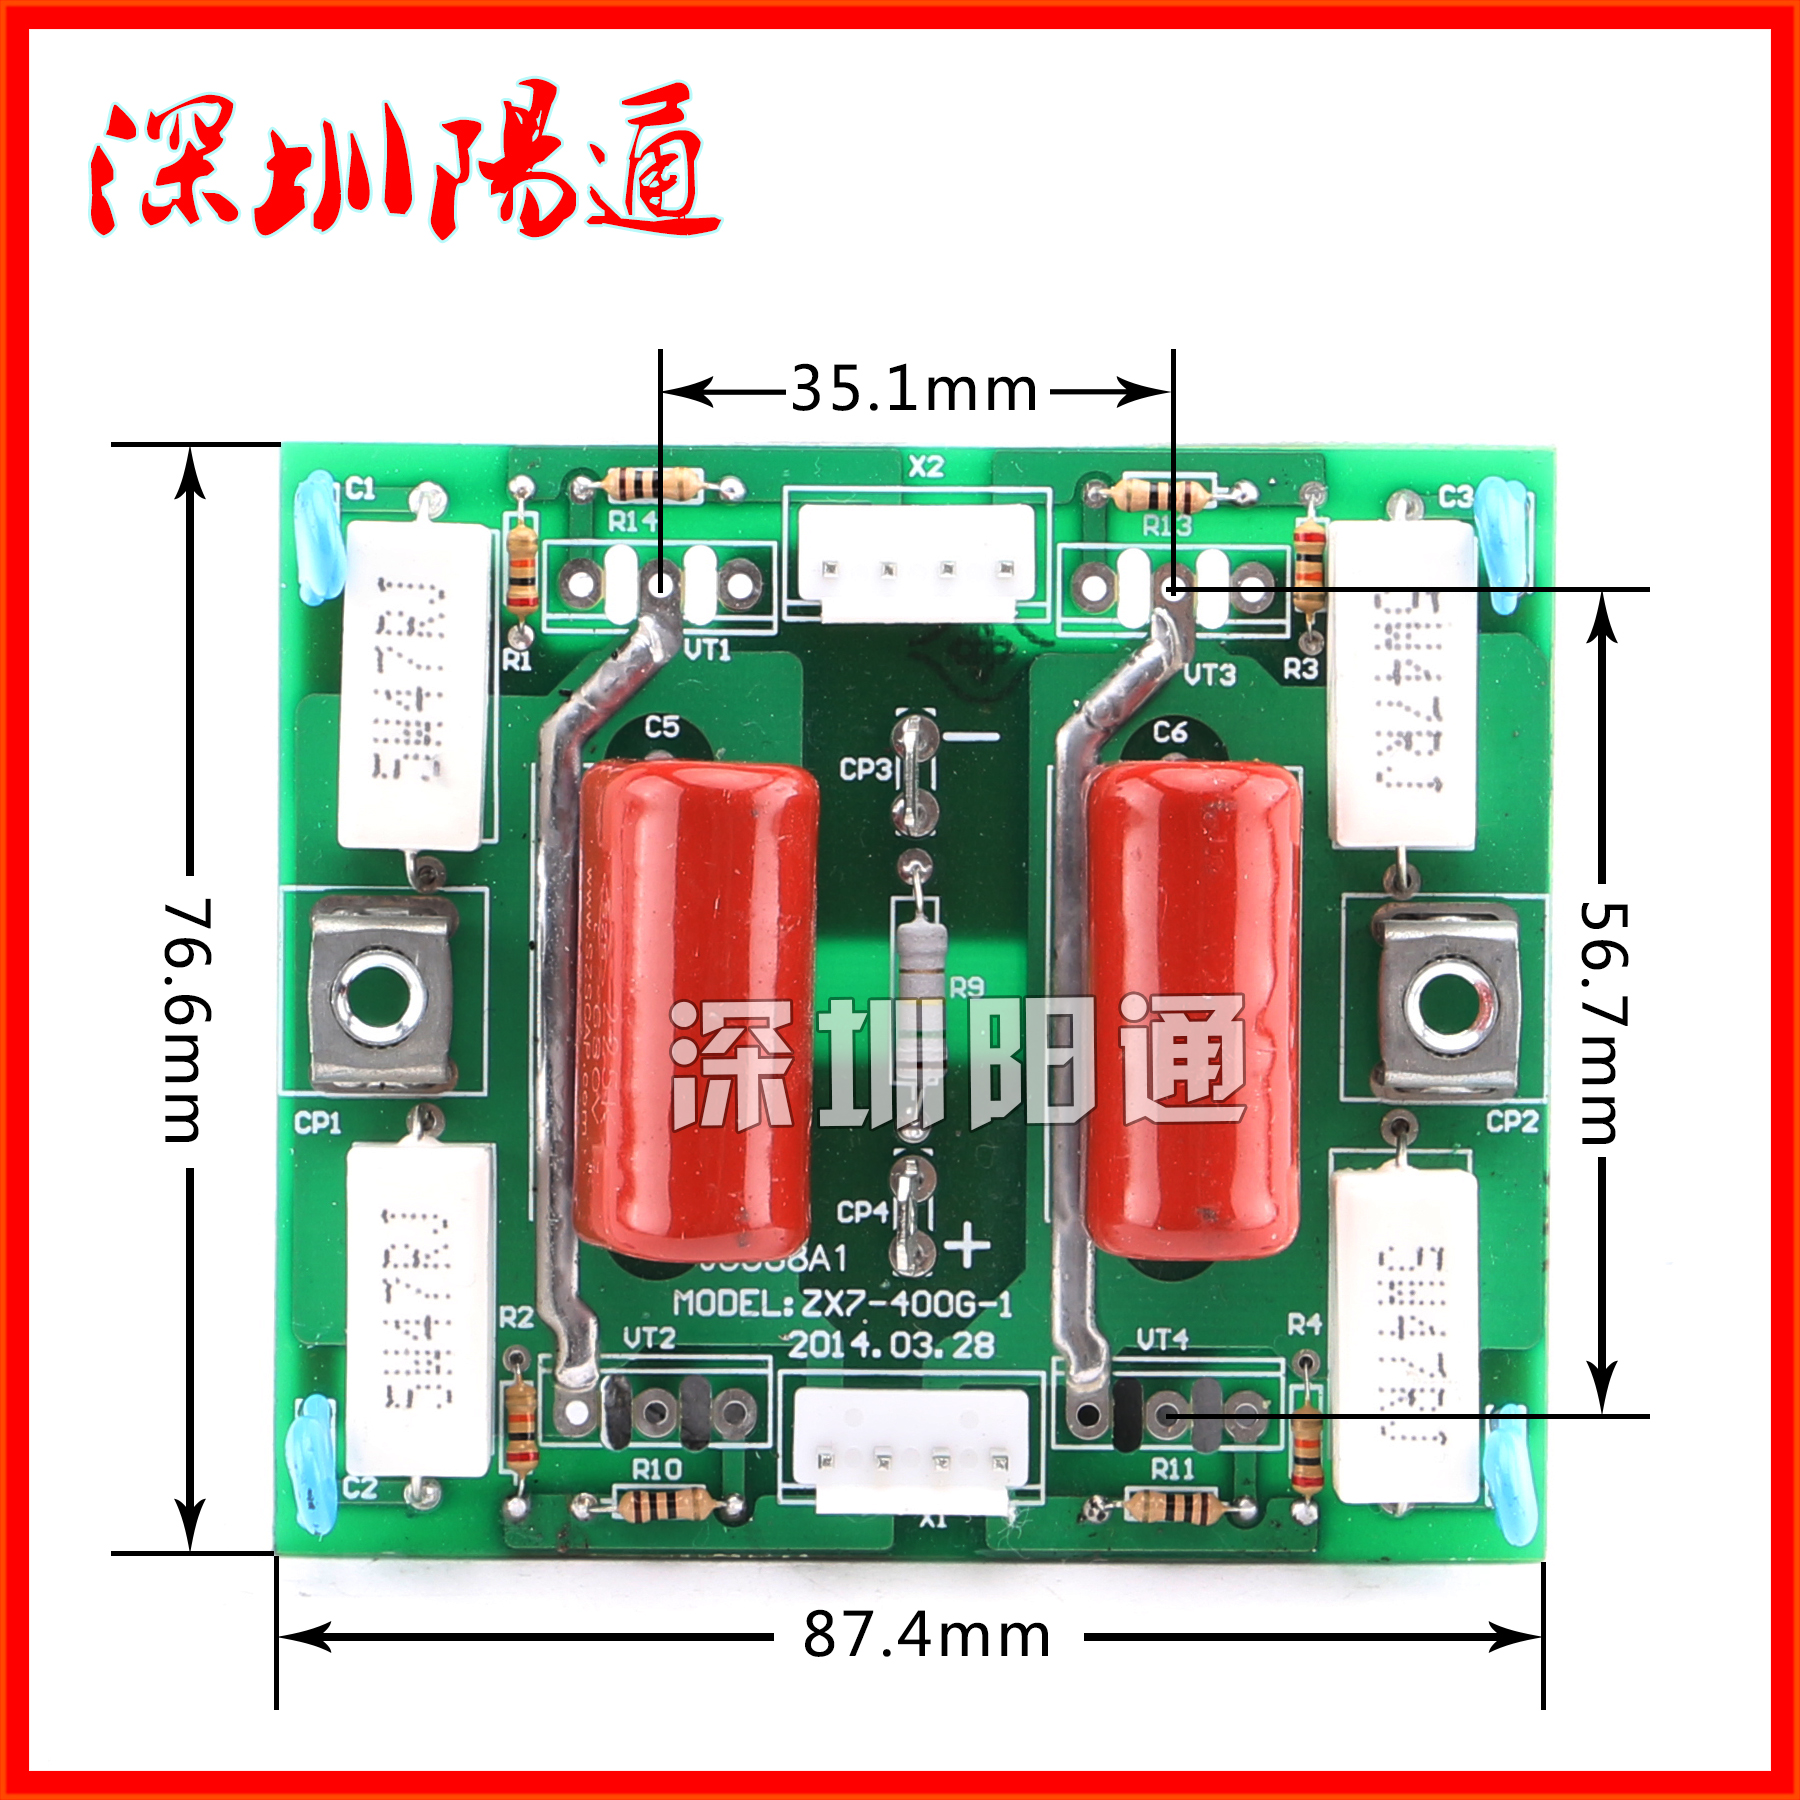 small resolution of single tube zx7400igbt electric welding machine inverter plate constant feed inverter dc electric welding machine circuit boar in air conditioner parts from